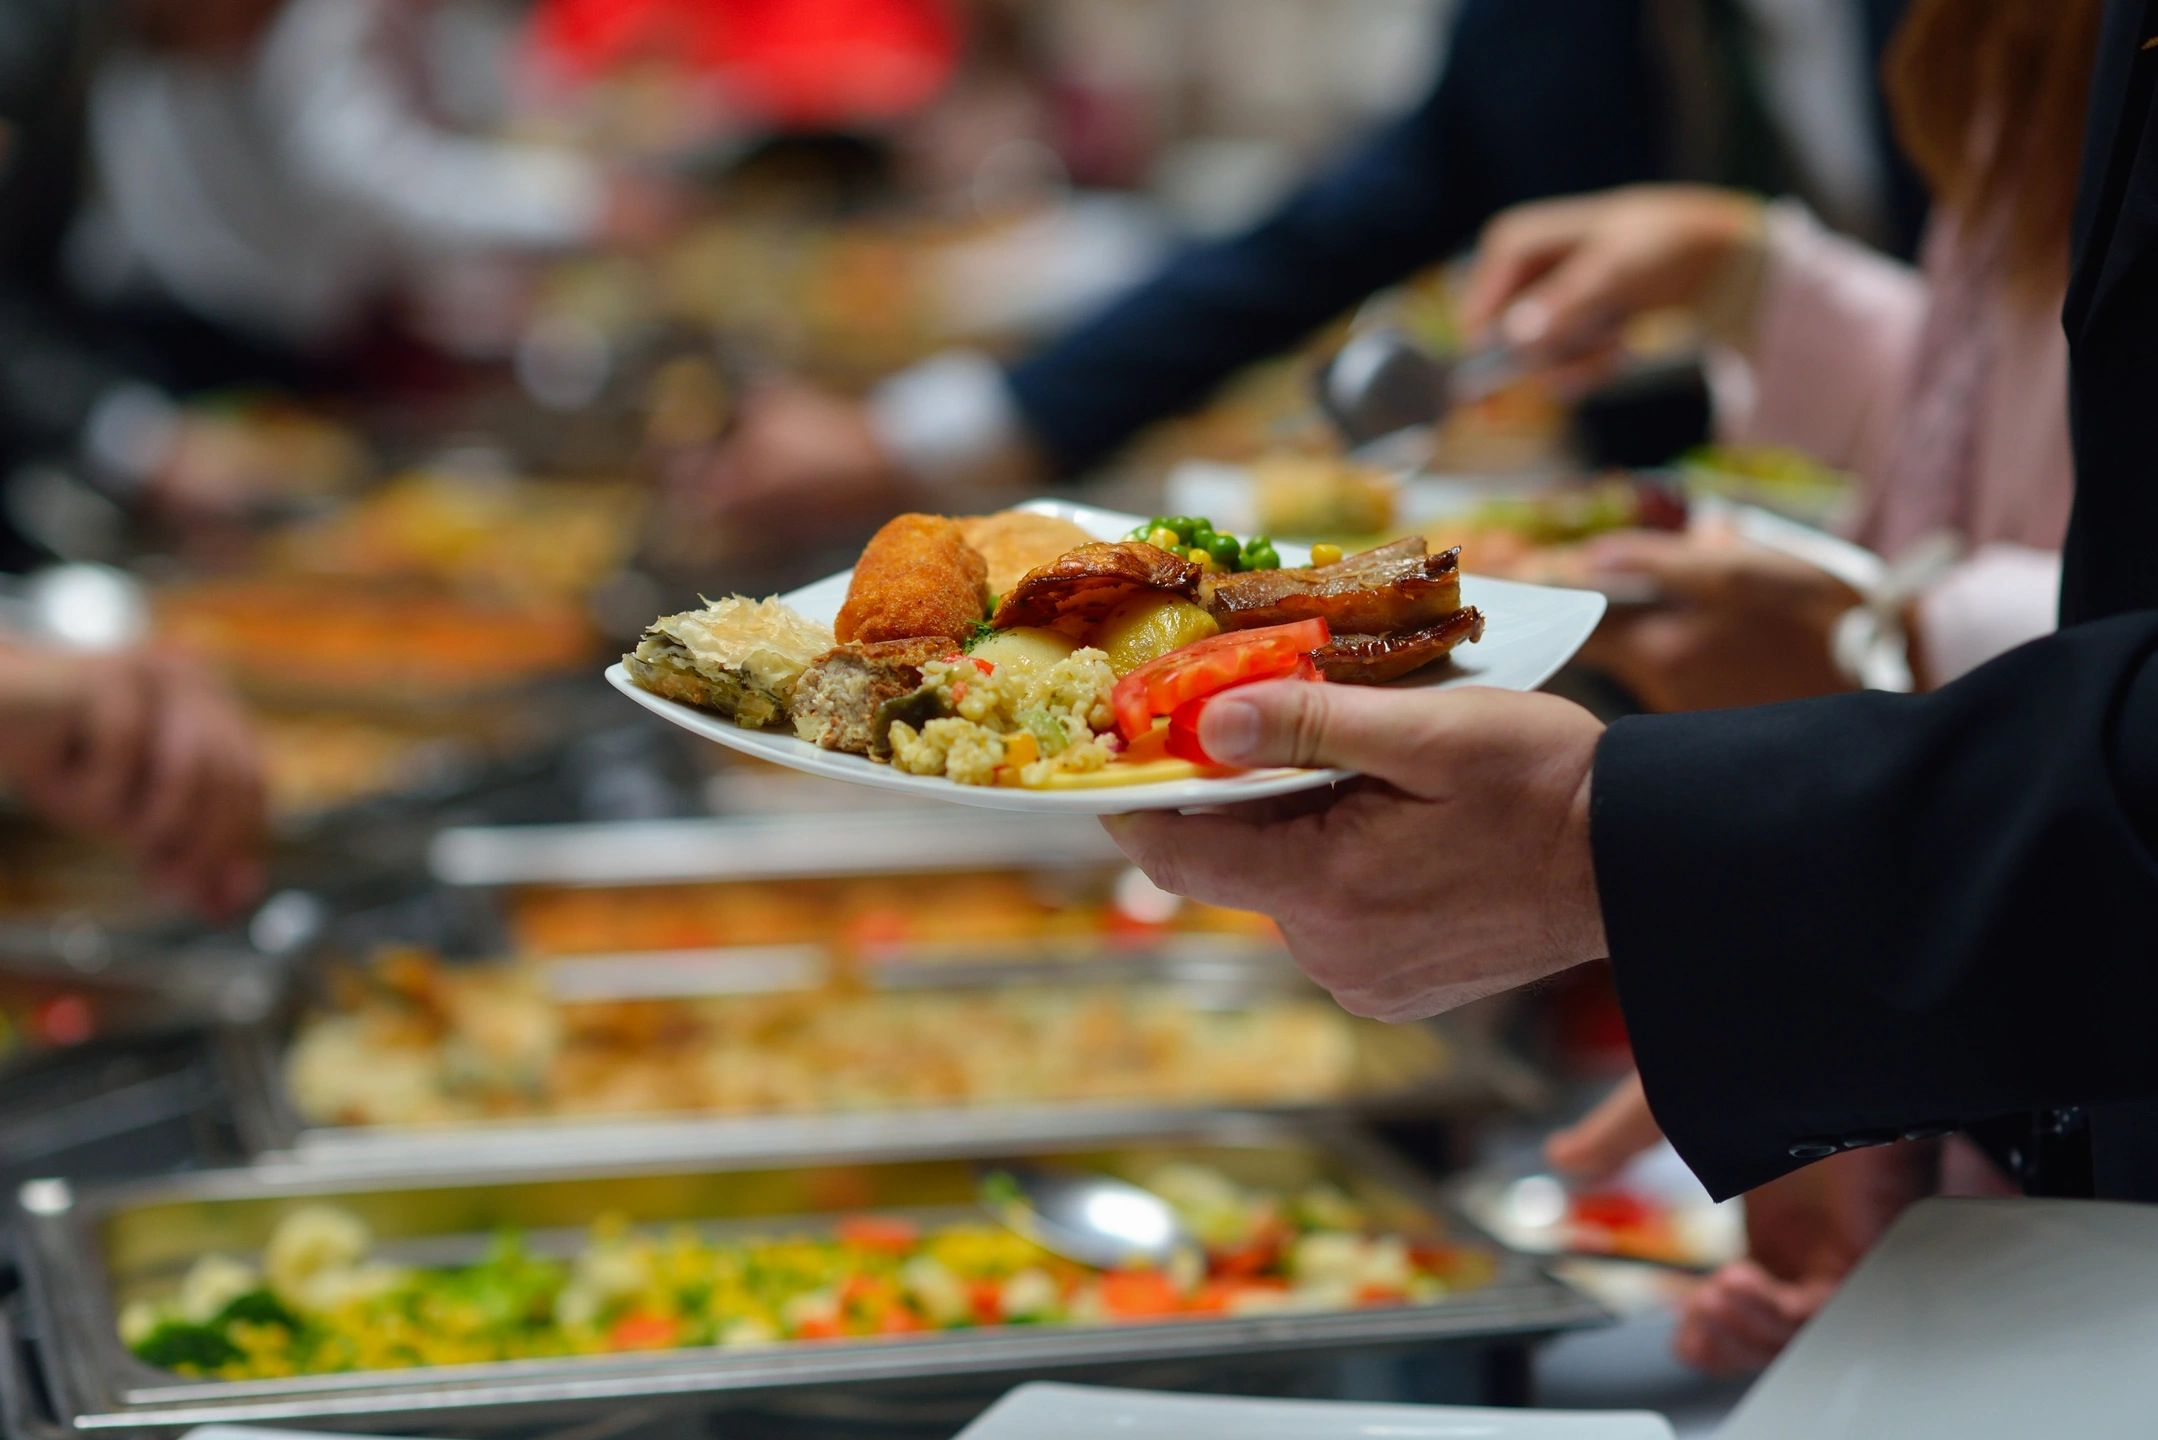 Wondrous Mcnulty Foley Catering Catering Event Catering Download Free Architecture Designs Sospemadebymaigaardcom